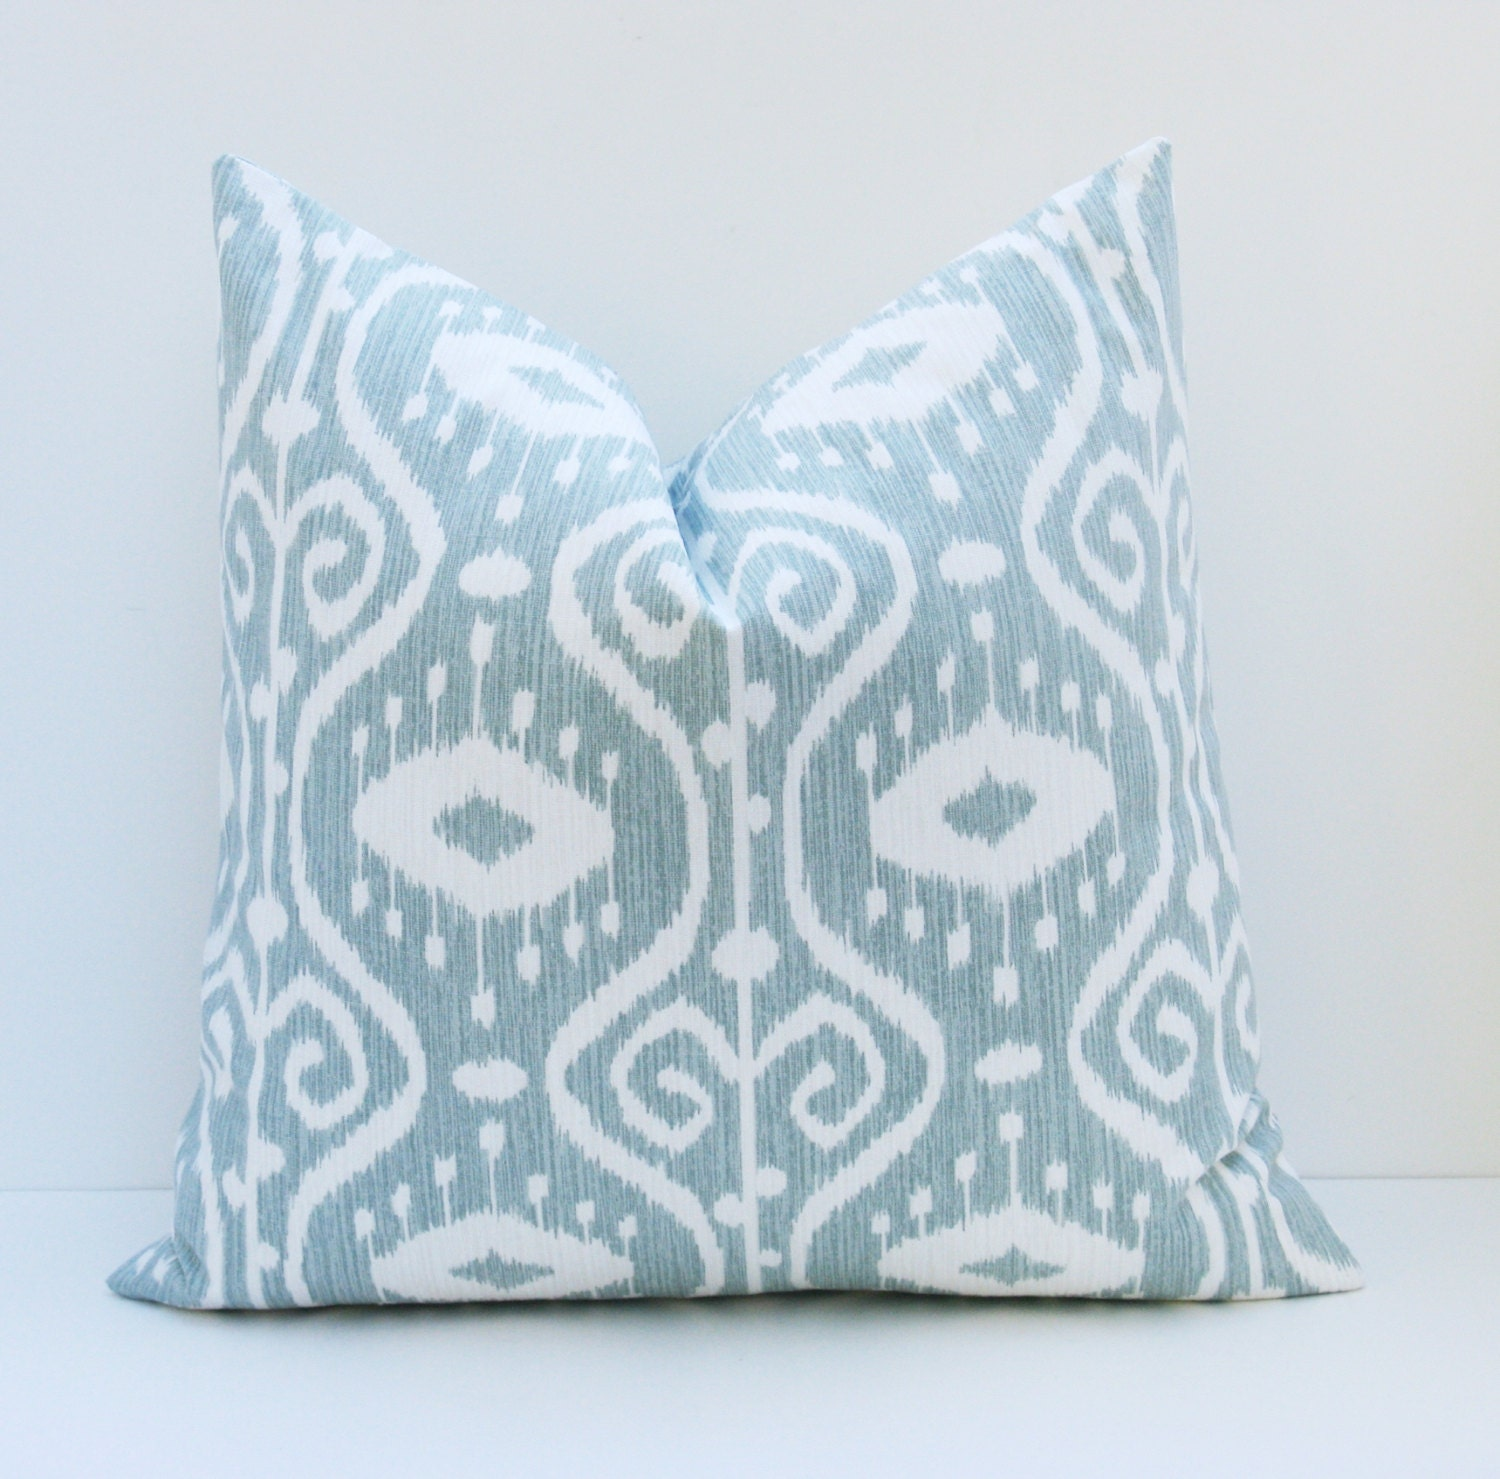 Decorative Pillow Covers 26x26 : Euro Pillow Sham ONE 26x26 Pillow Cover Blue Green by EastAndNest